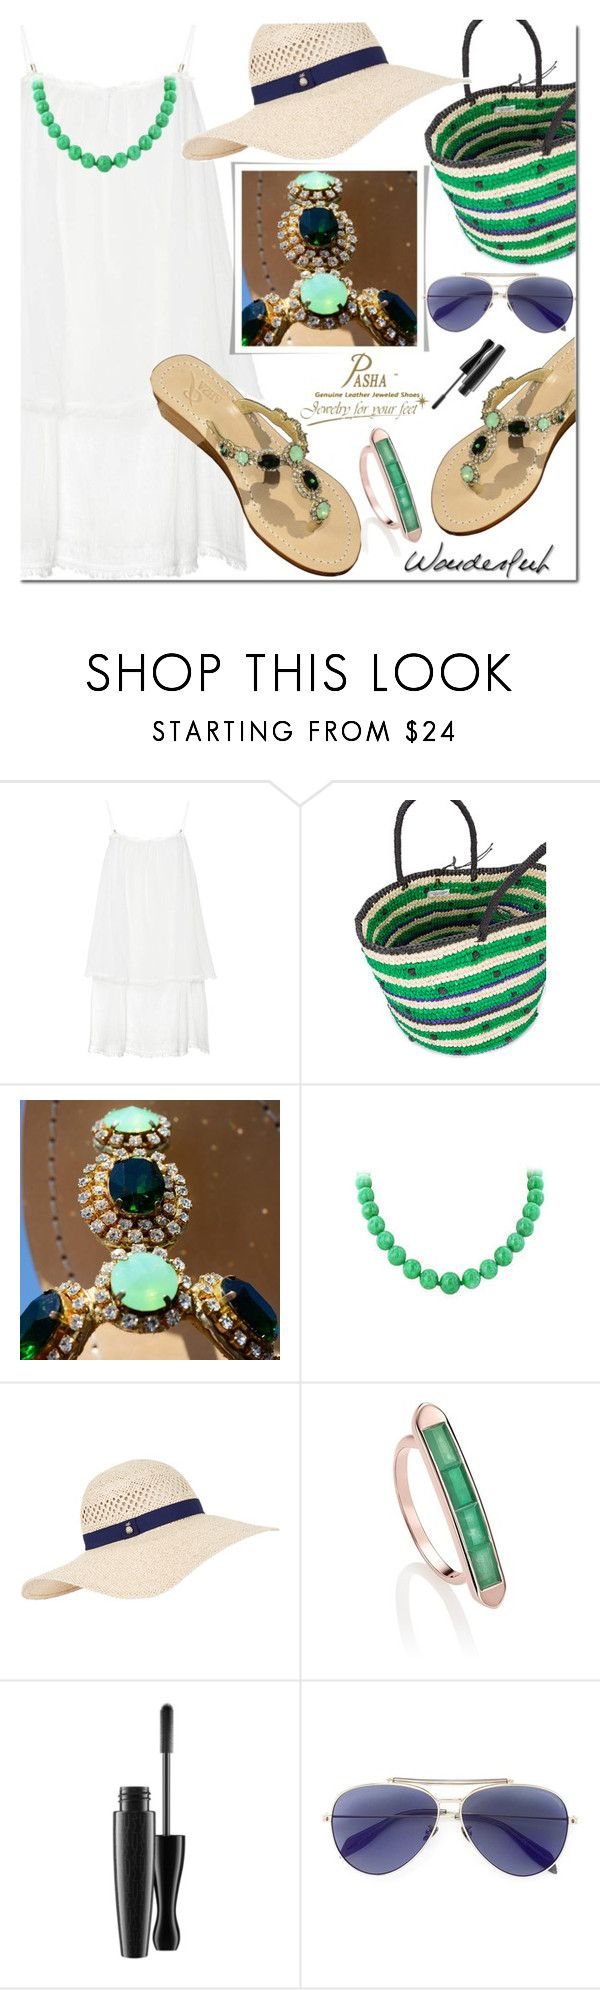 Jewelry Shoes Pasha by mada-malureanu on Polyvore featuring Heidi Klein, Sensi Studio, Monica Vinader, Accessorize and Alexander McQueen